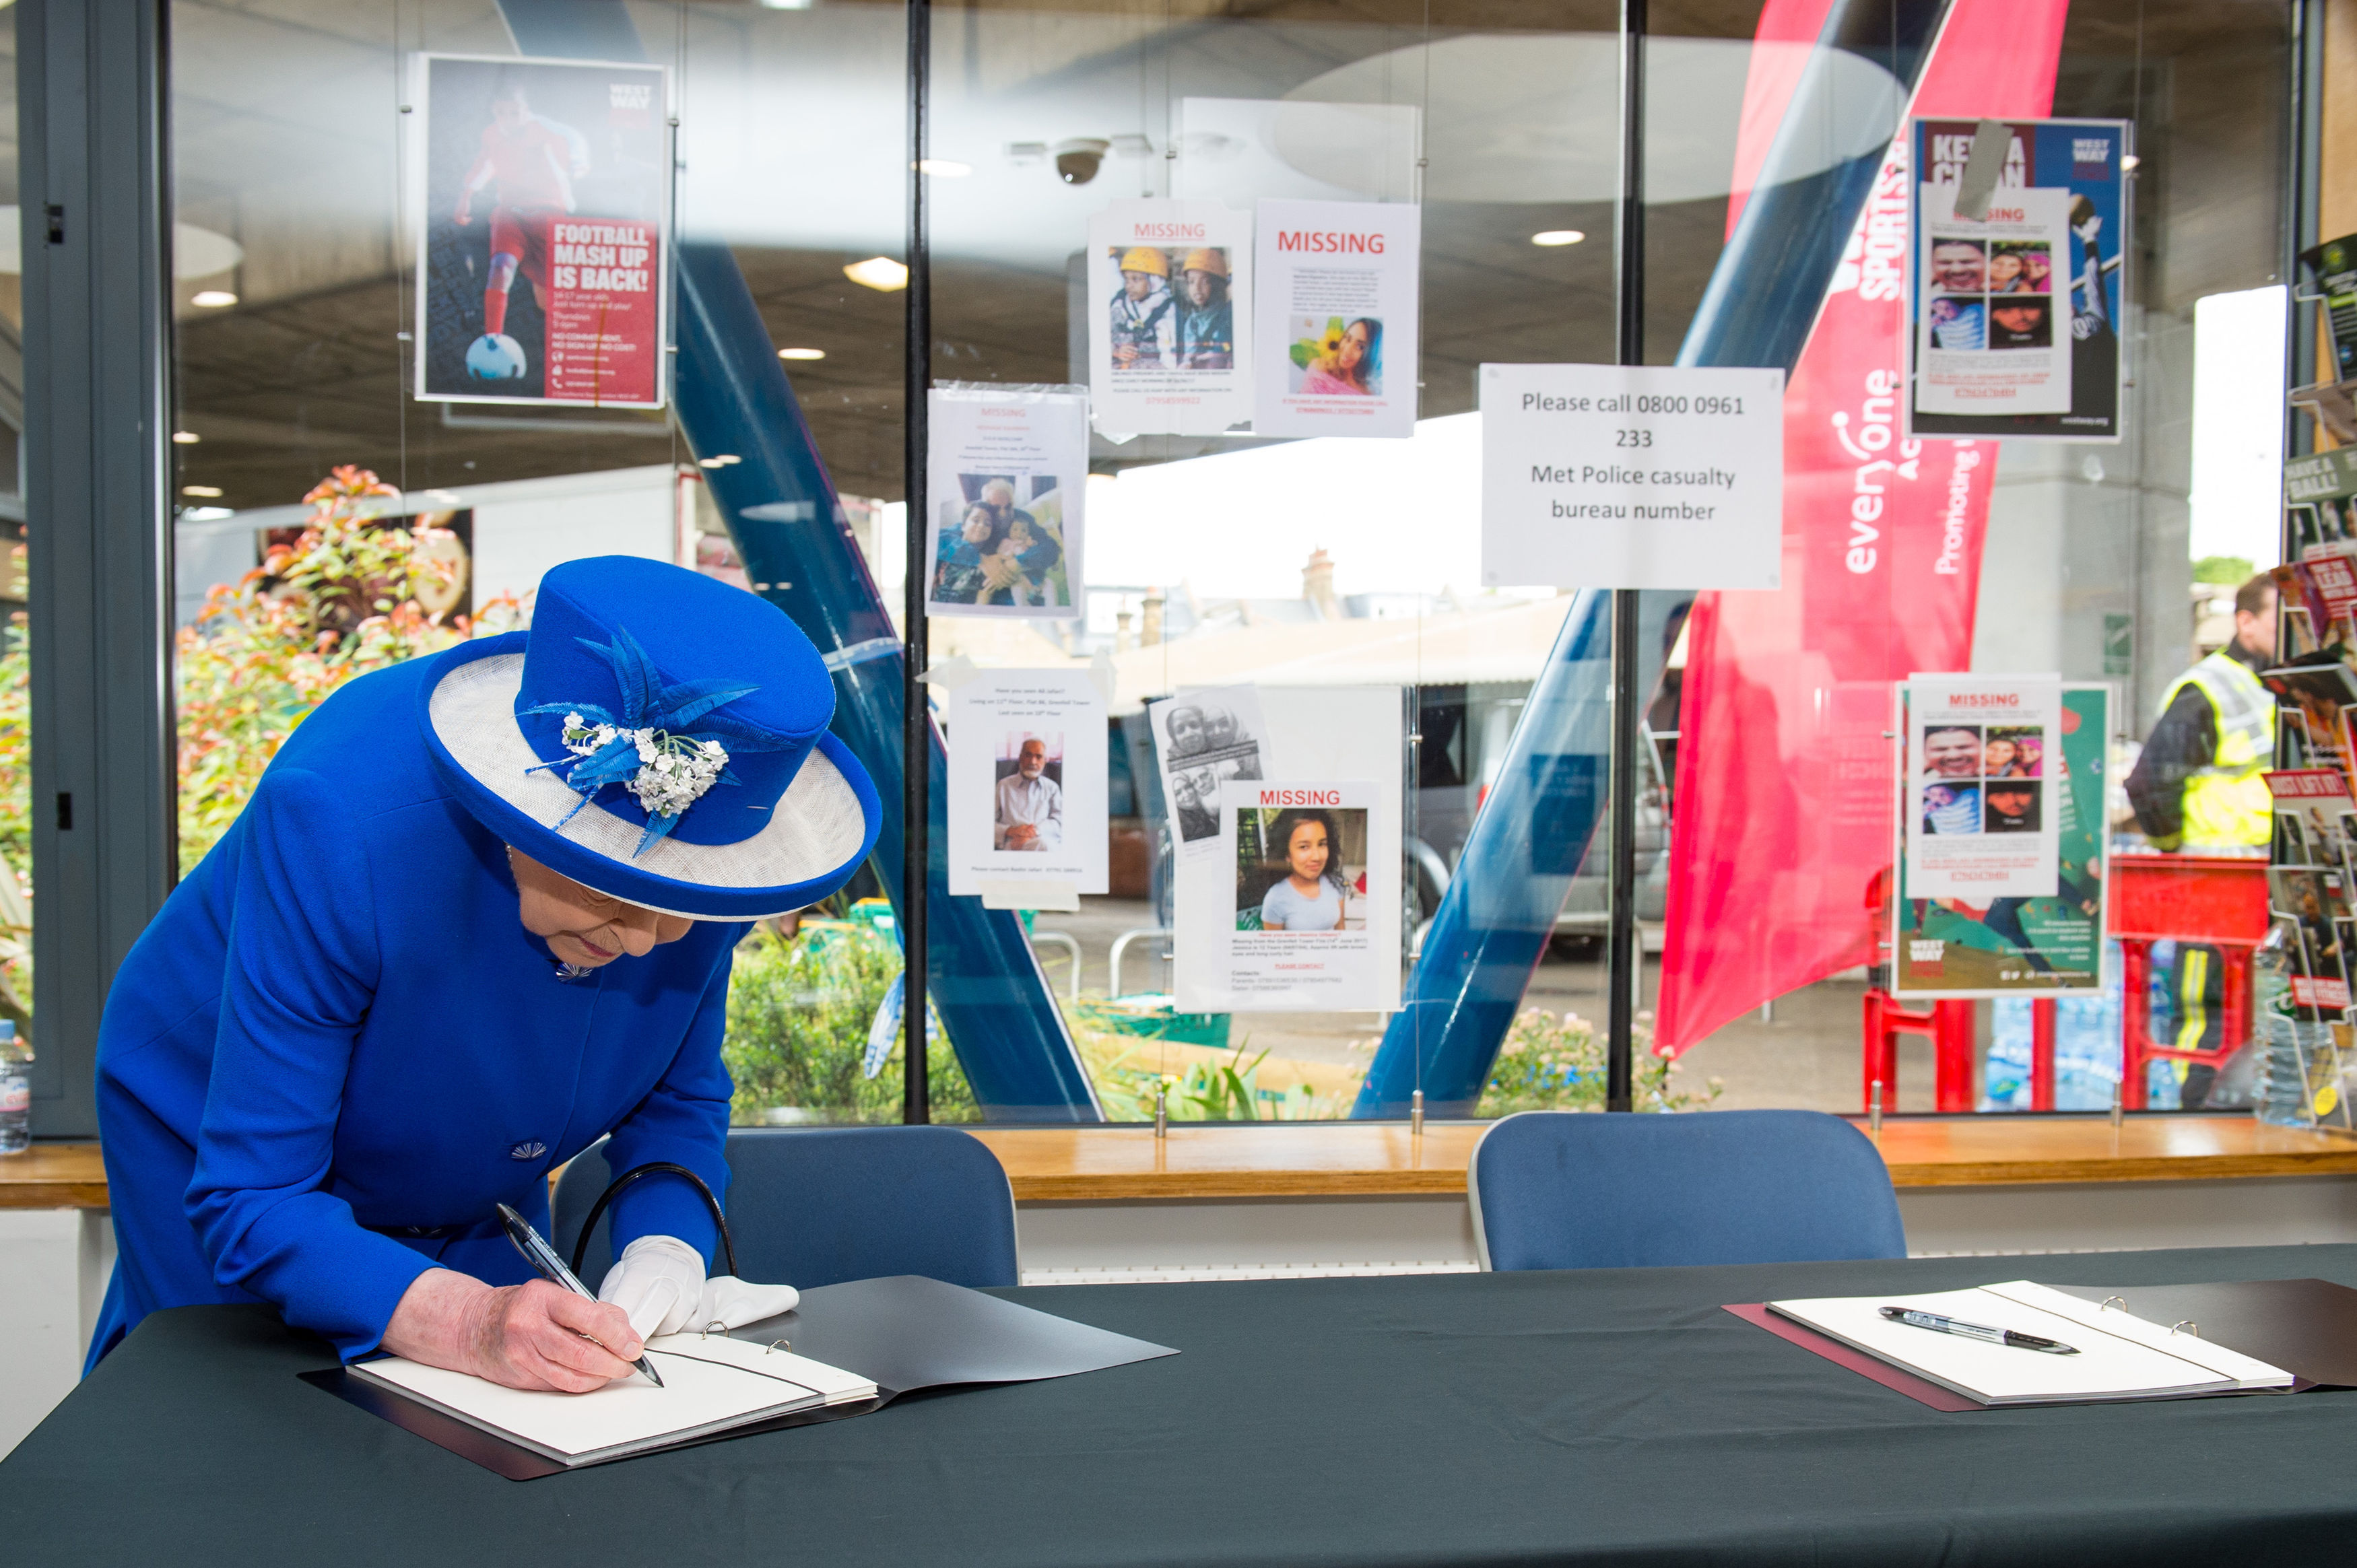 The Queen signs the book of condolence